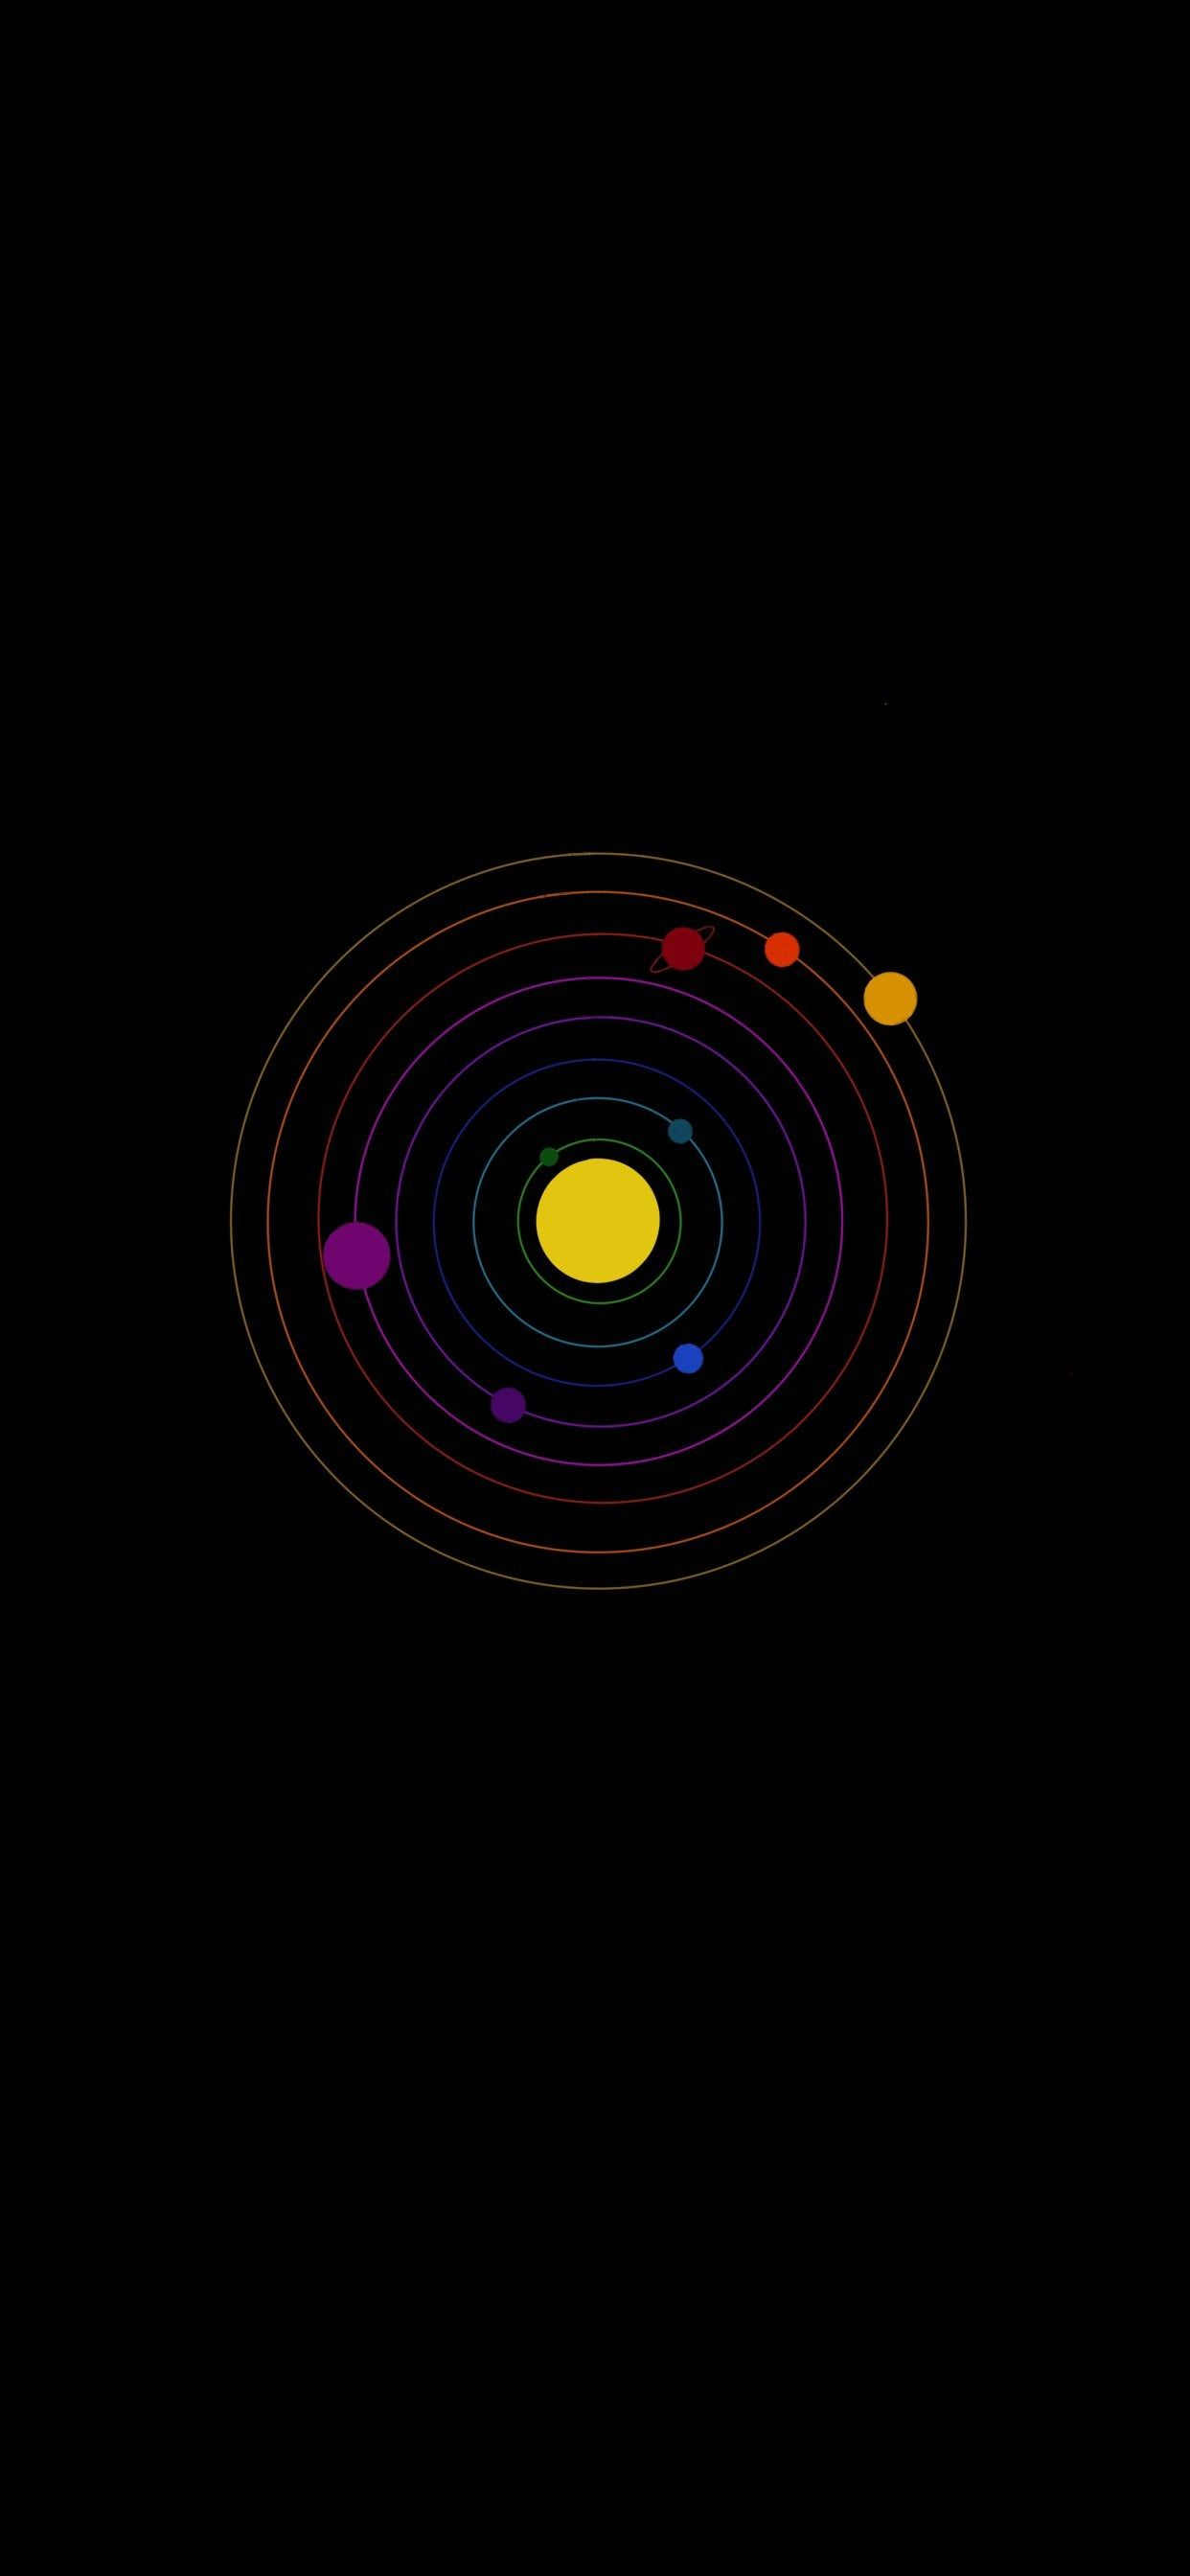 Solar System iPhone Wallpapers - Wallpaper Cave